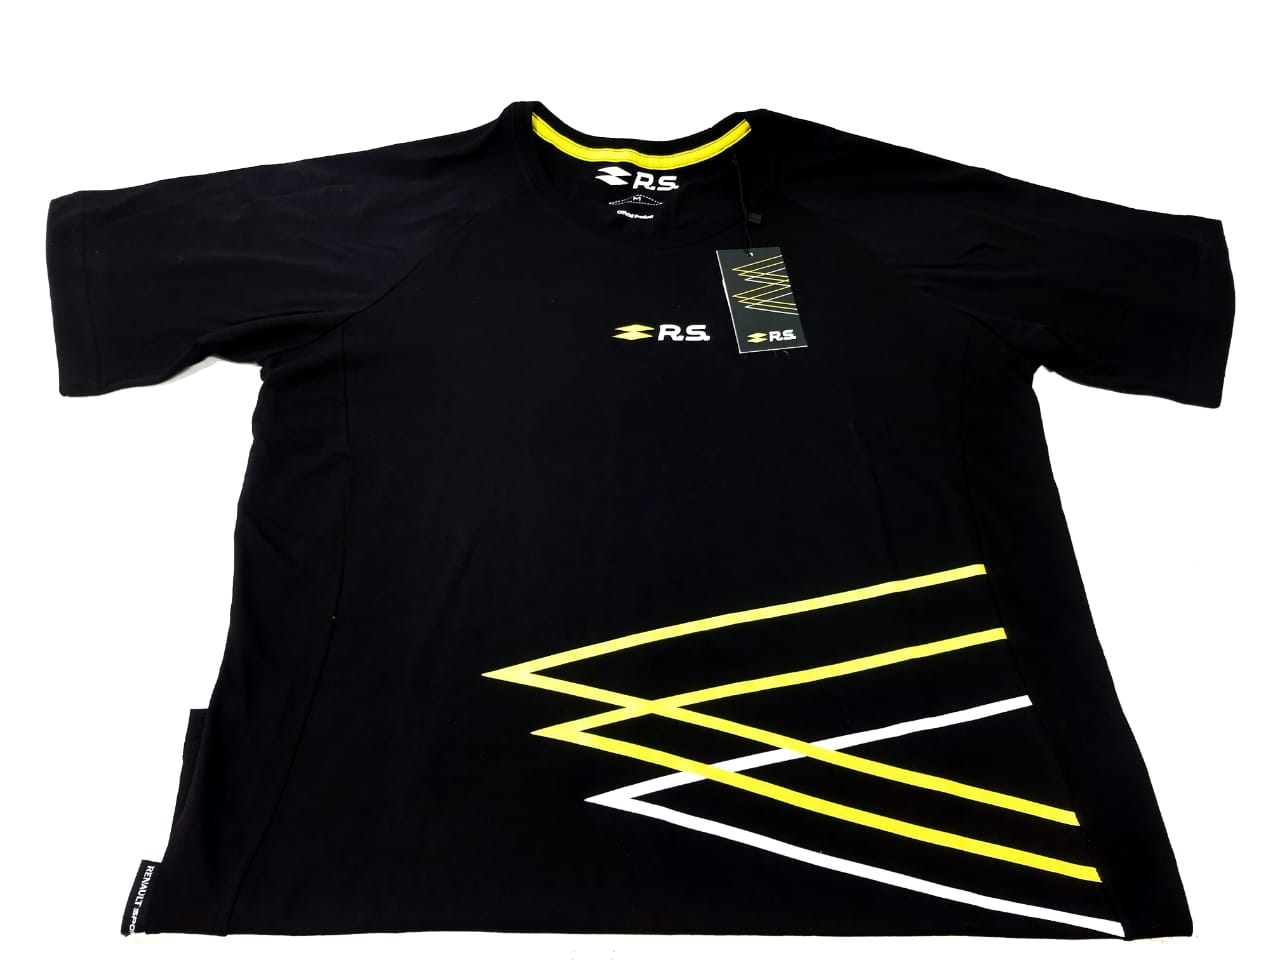 Camiseta Gg New Graphic Rs - Camiseta - Preto - Sku: 7711733